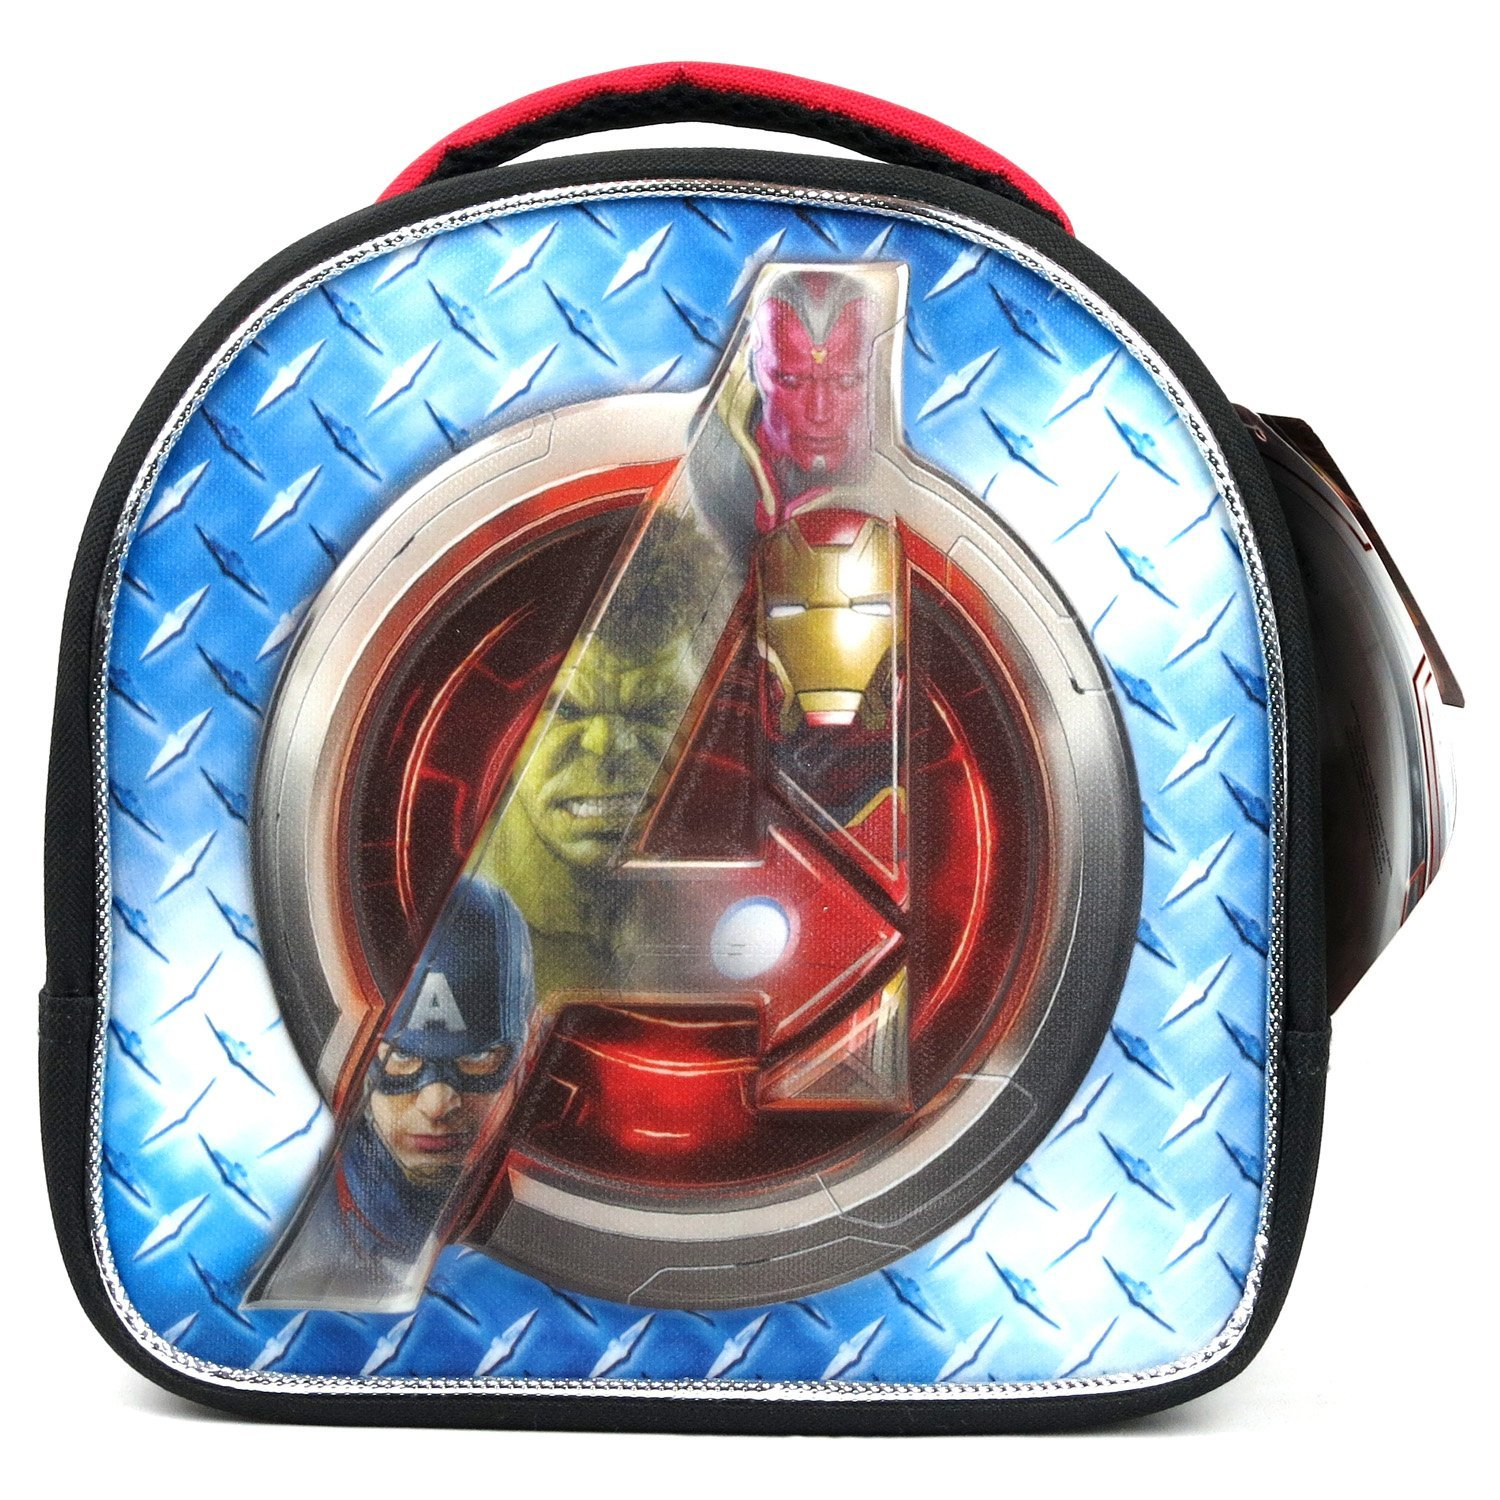 GDC Marvel Avenger Movie Series Single Compartment Soft Insulated Lunch Bag with